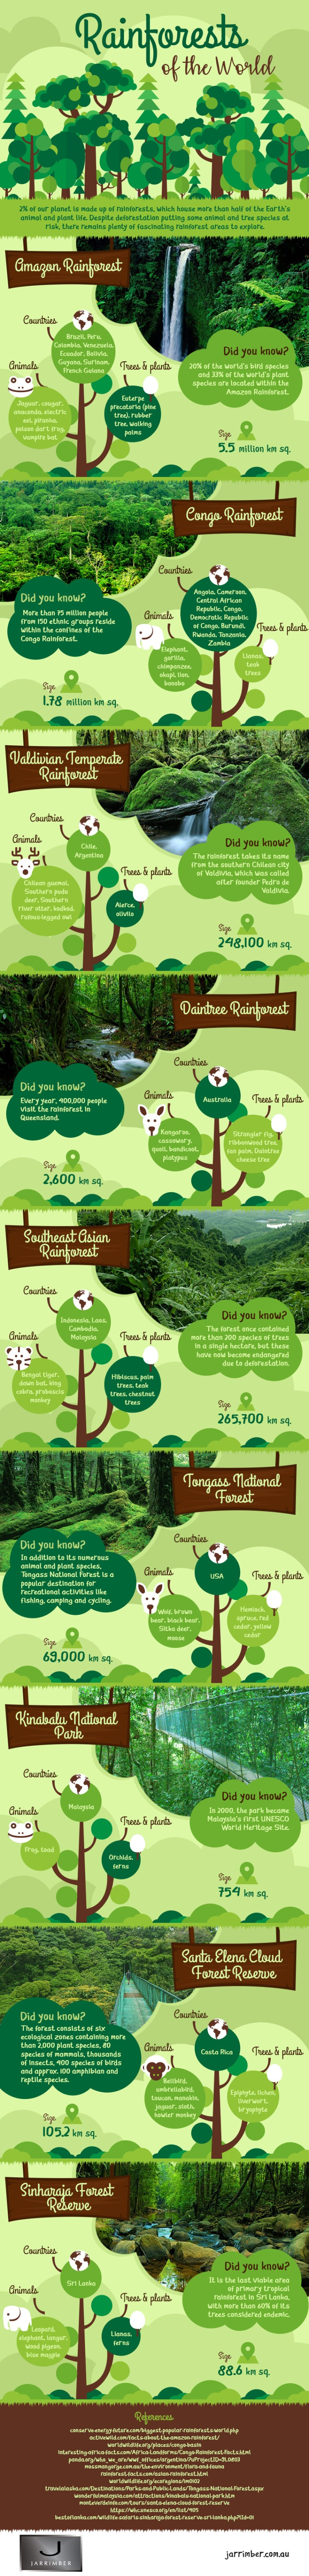 Rainforests of the World [Infographic] | ecogreenlove